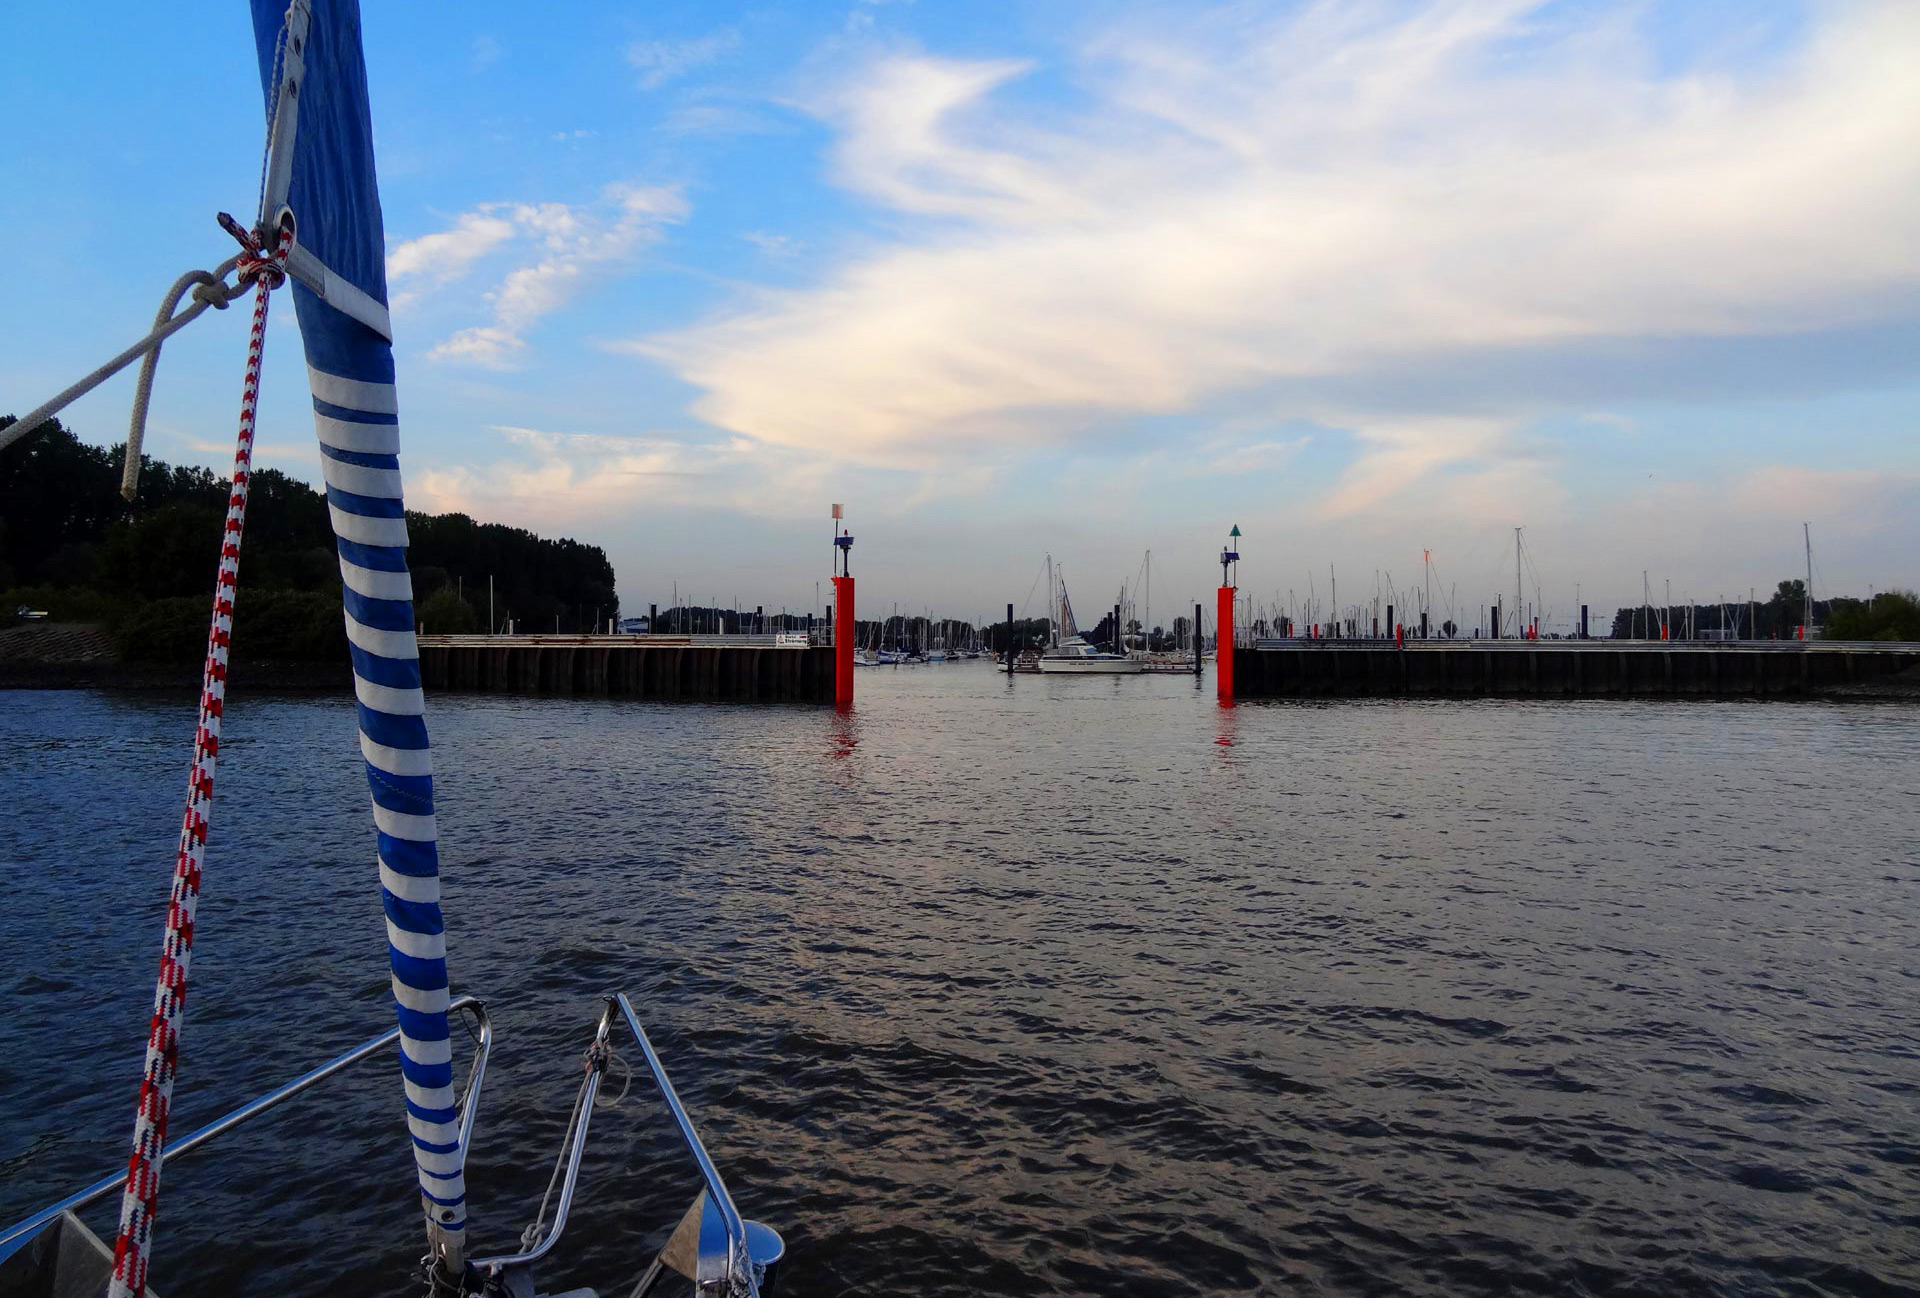 Entrance to Hamburg Yachthafen - tricky due to strong currents.